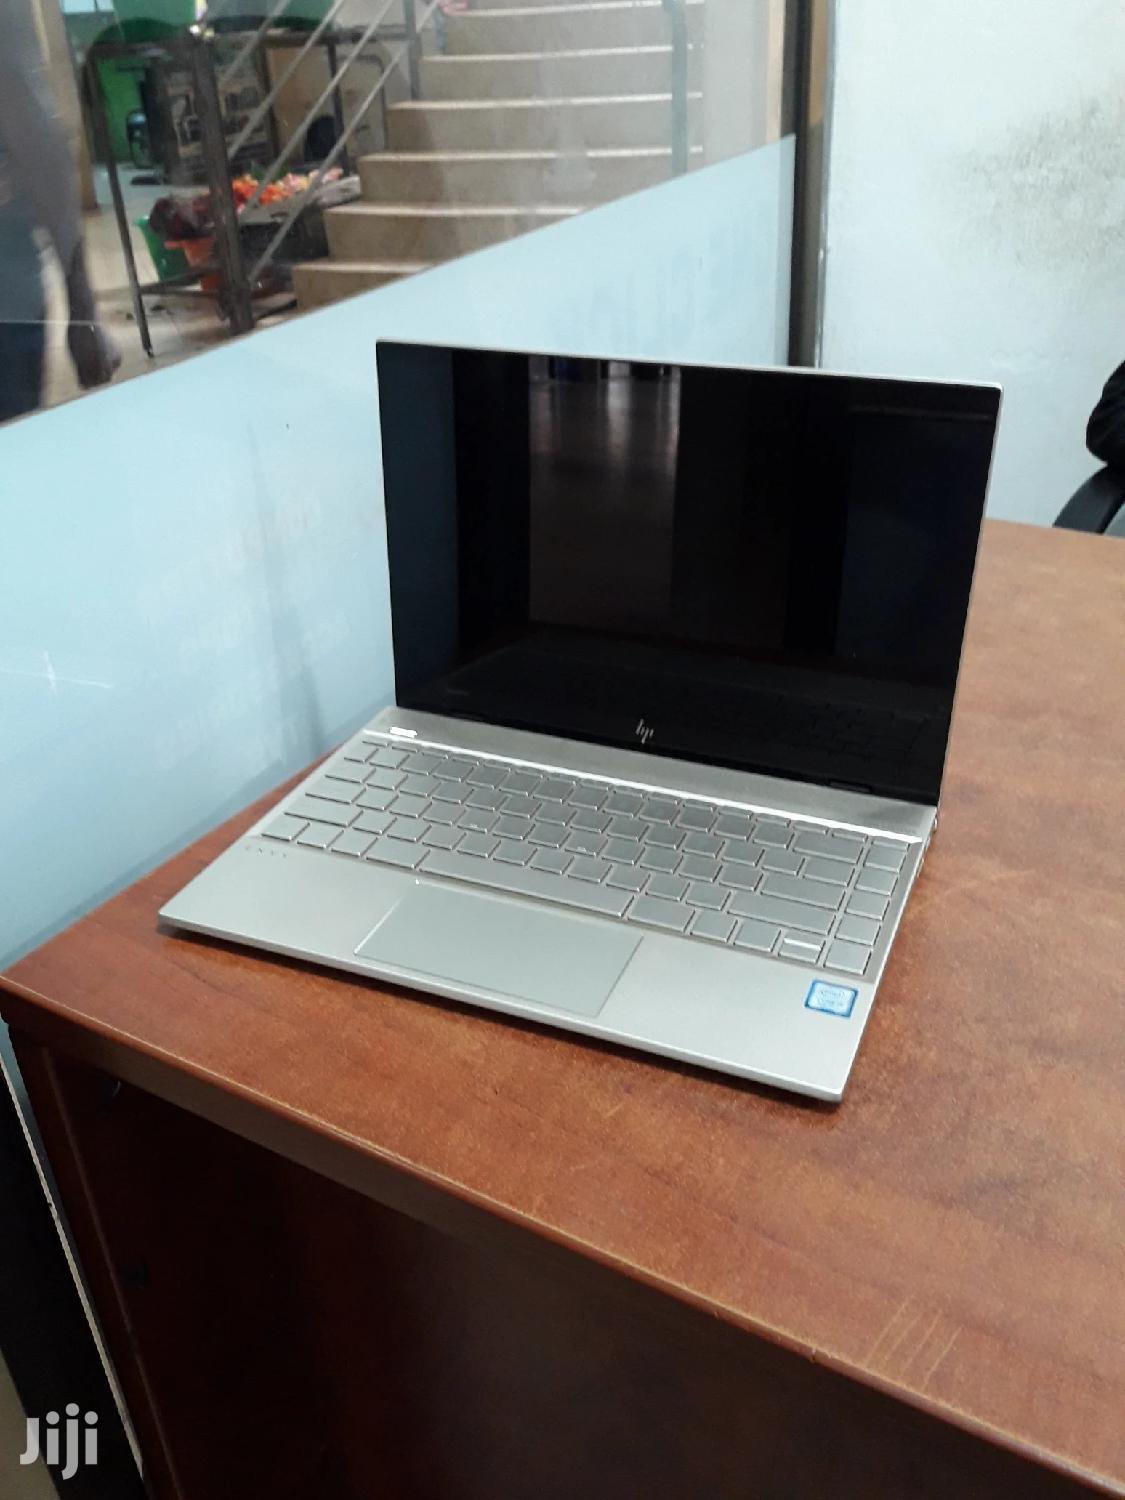 New Laptop HP Envy 13 8GB Intel Core I5 SSD 256GB | Laptops & Computers for sale in Kampala, Central Region, Uganda